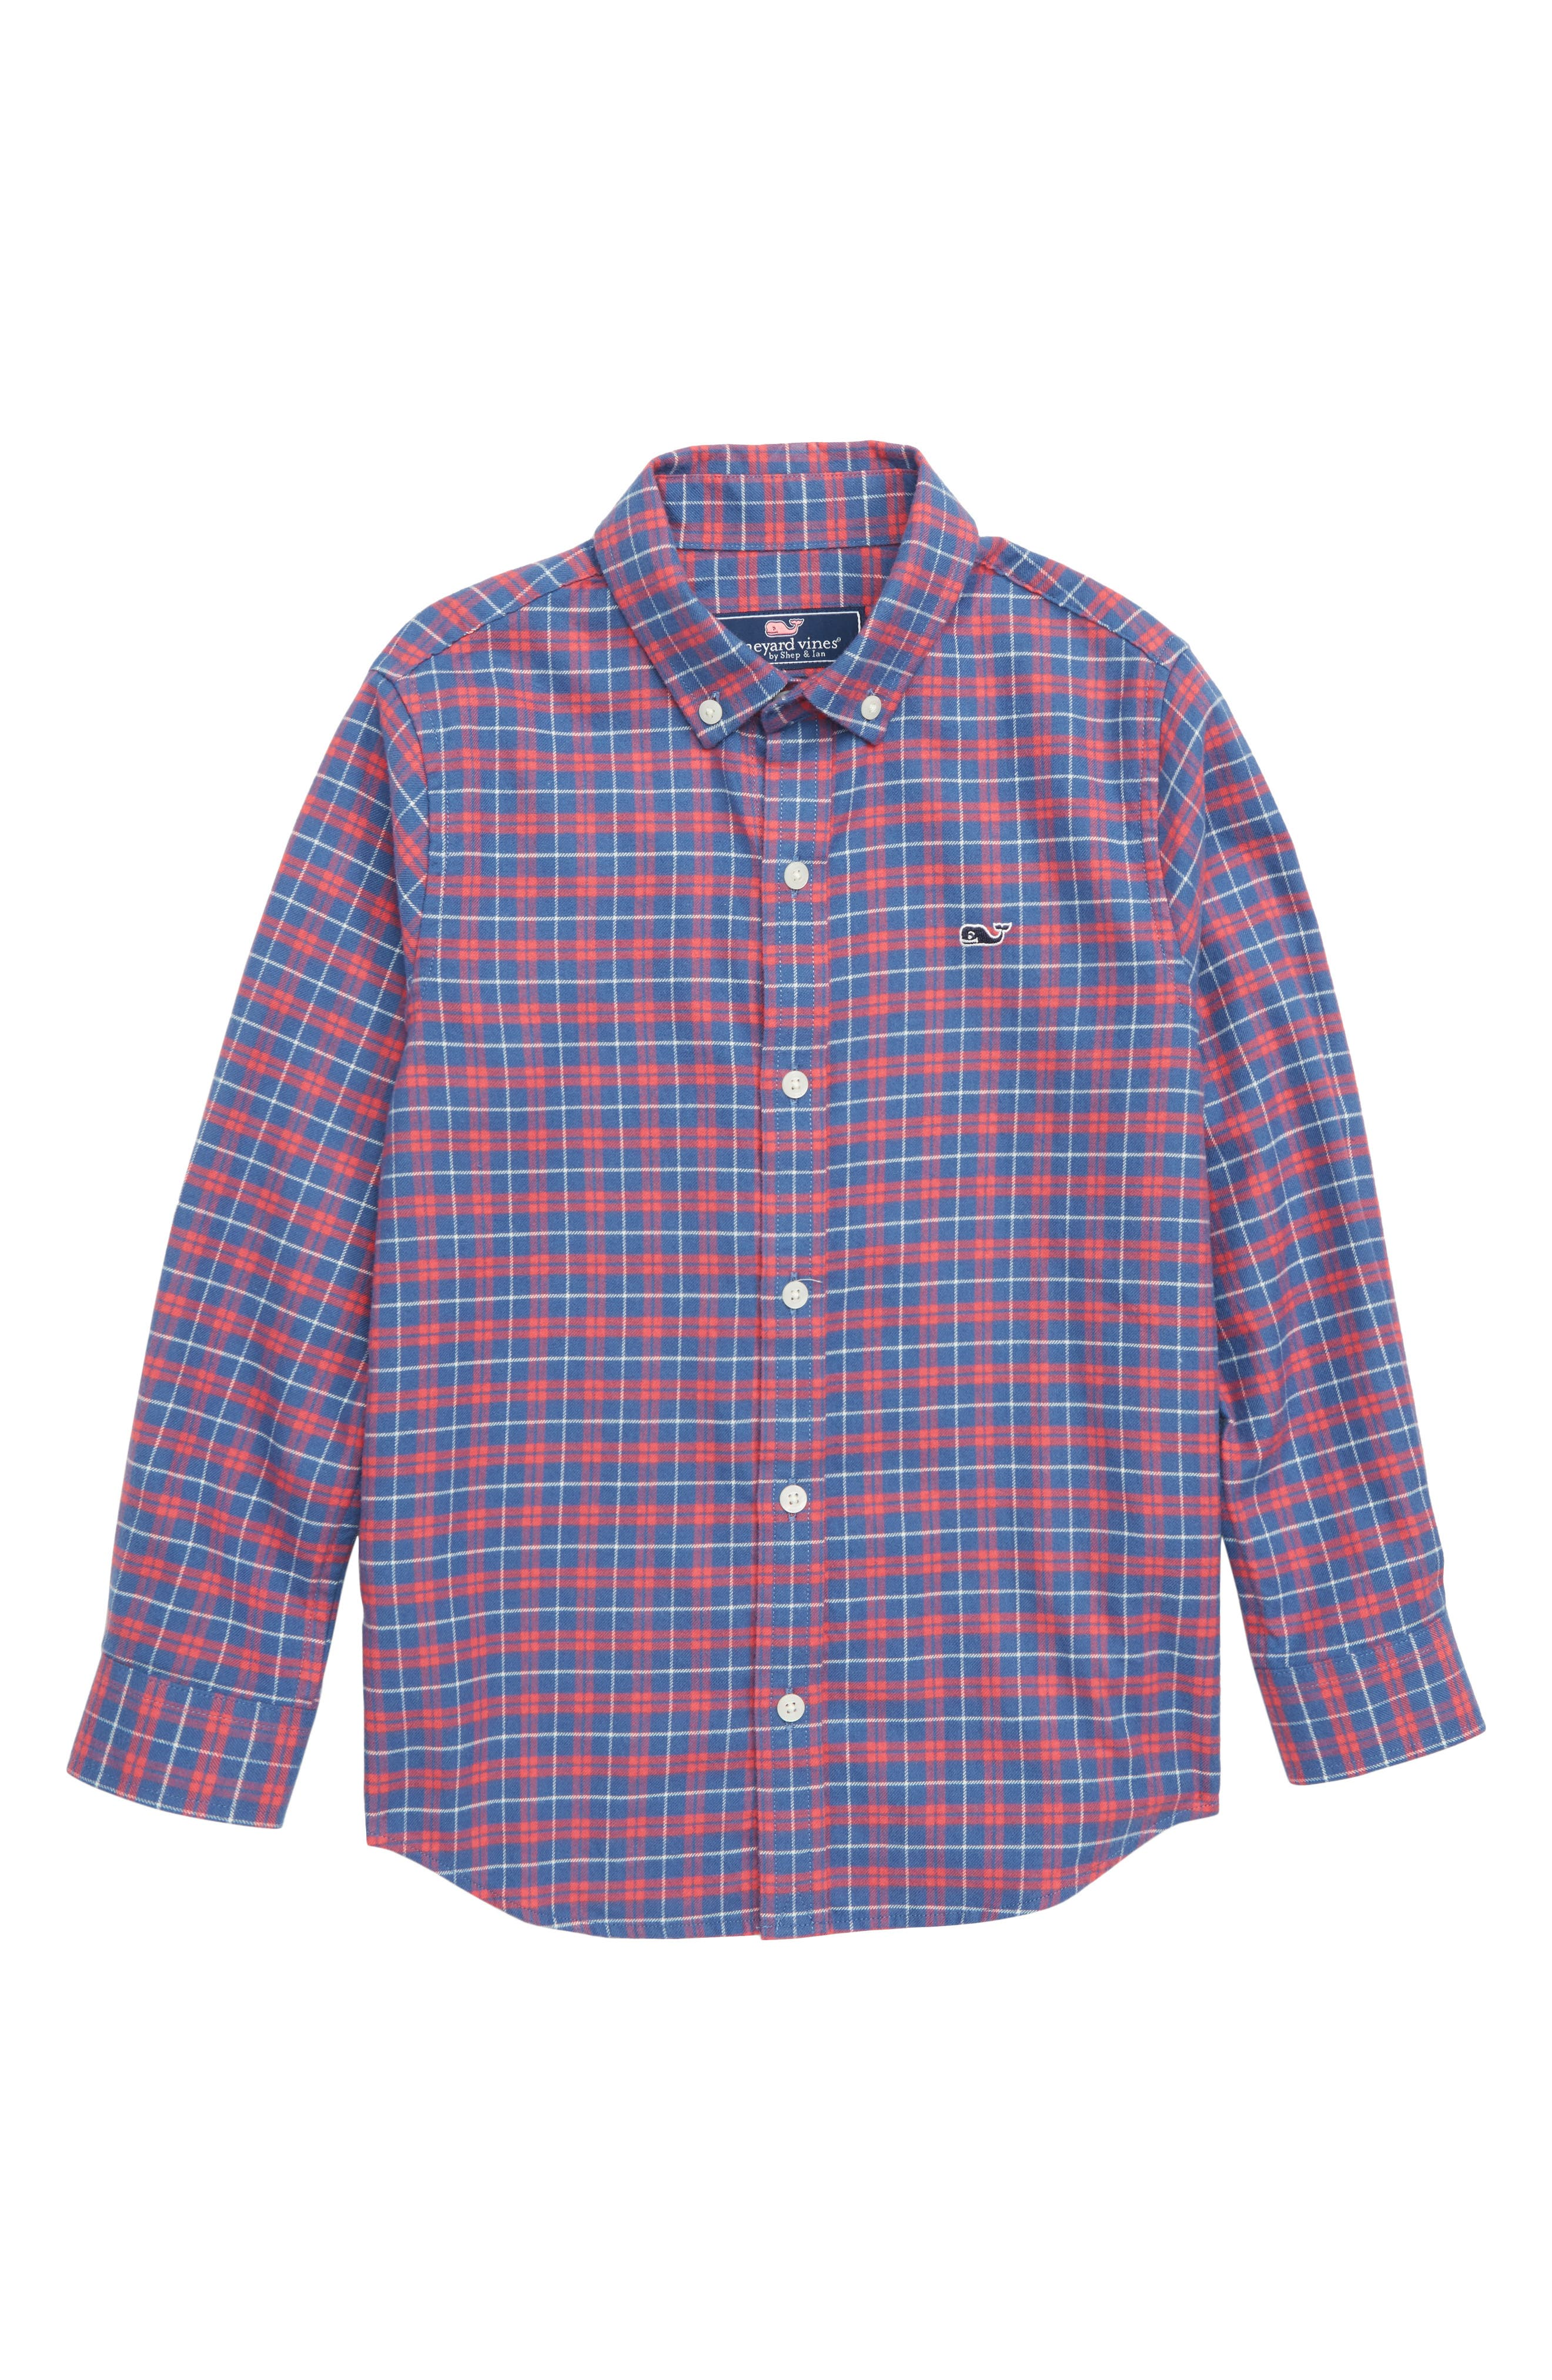 Flannel Whale Shirt,                             Main thumbnail 1, color,                             461